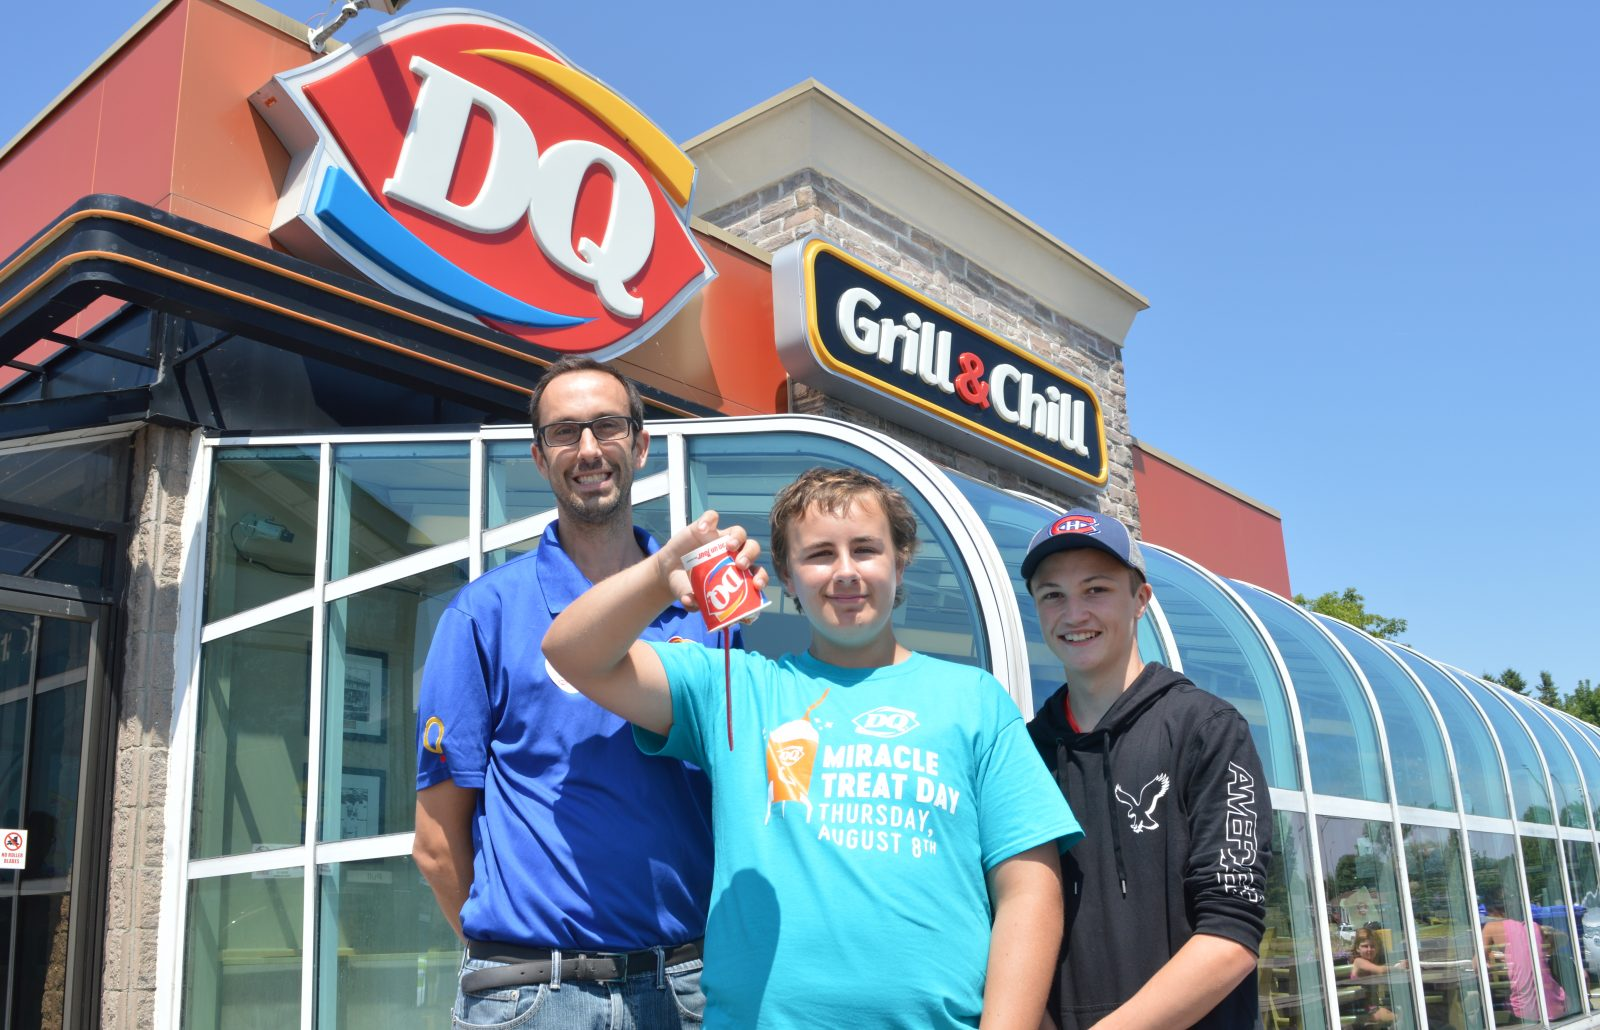 Supporting children's miracles, one blizzard at a time